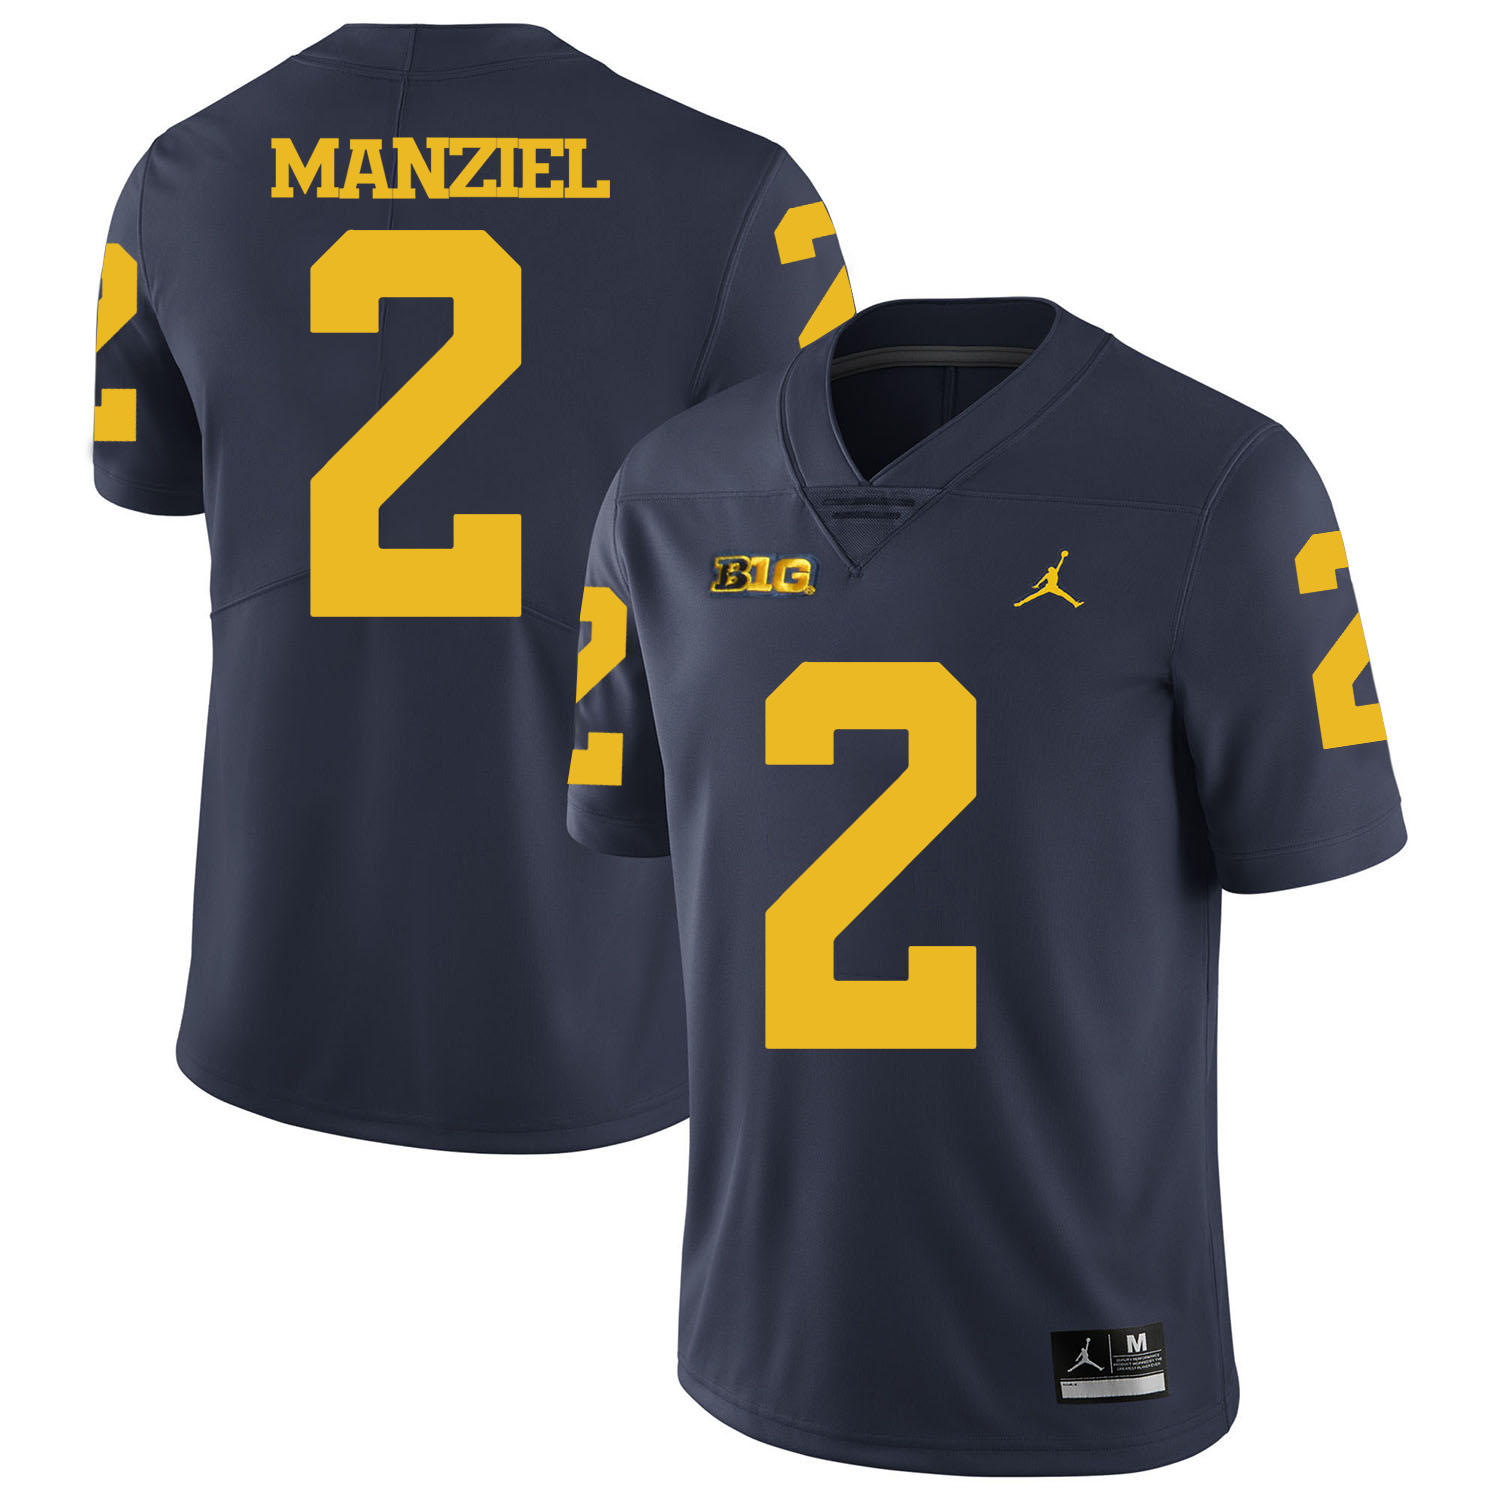 Michigan Wolverines 2 Johnny Manziel Navy College Football Jersey